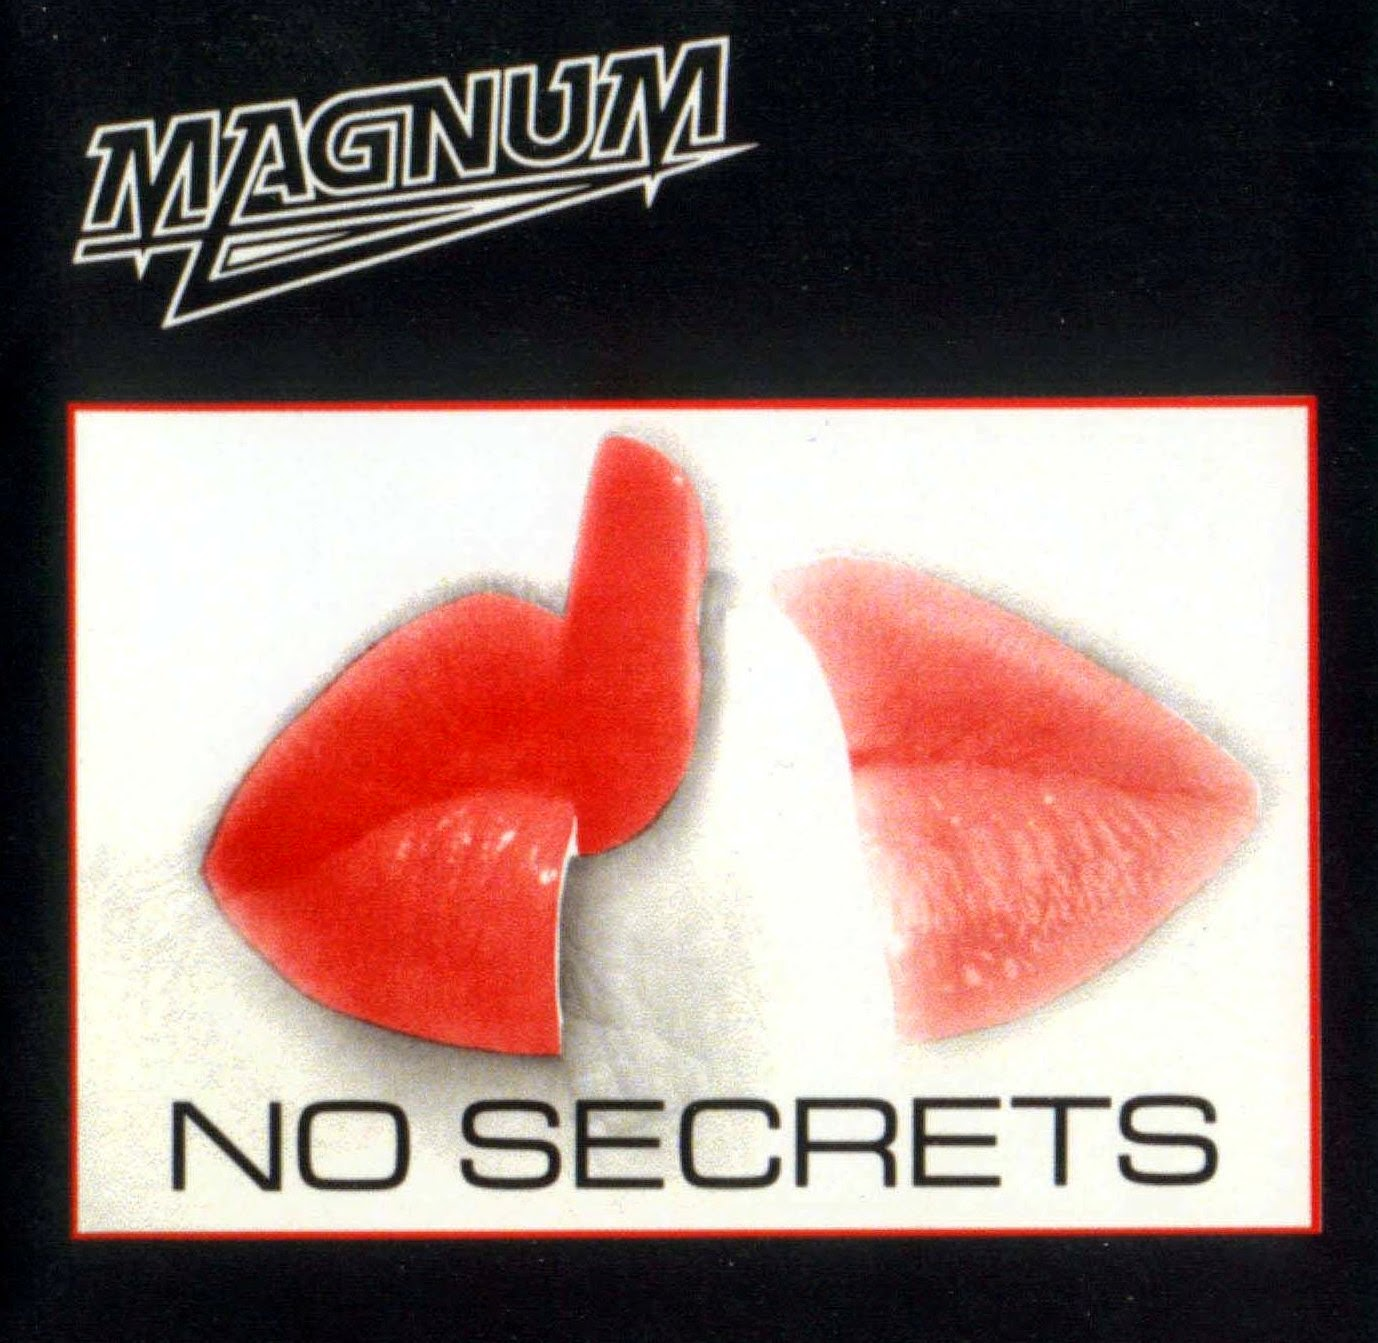 Magnum USA No secrets 1989 aor melodic rock